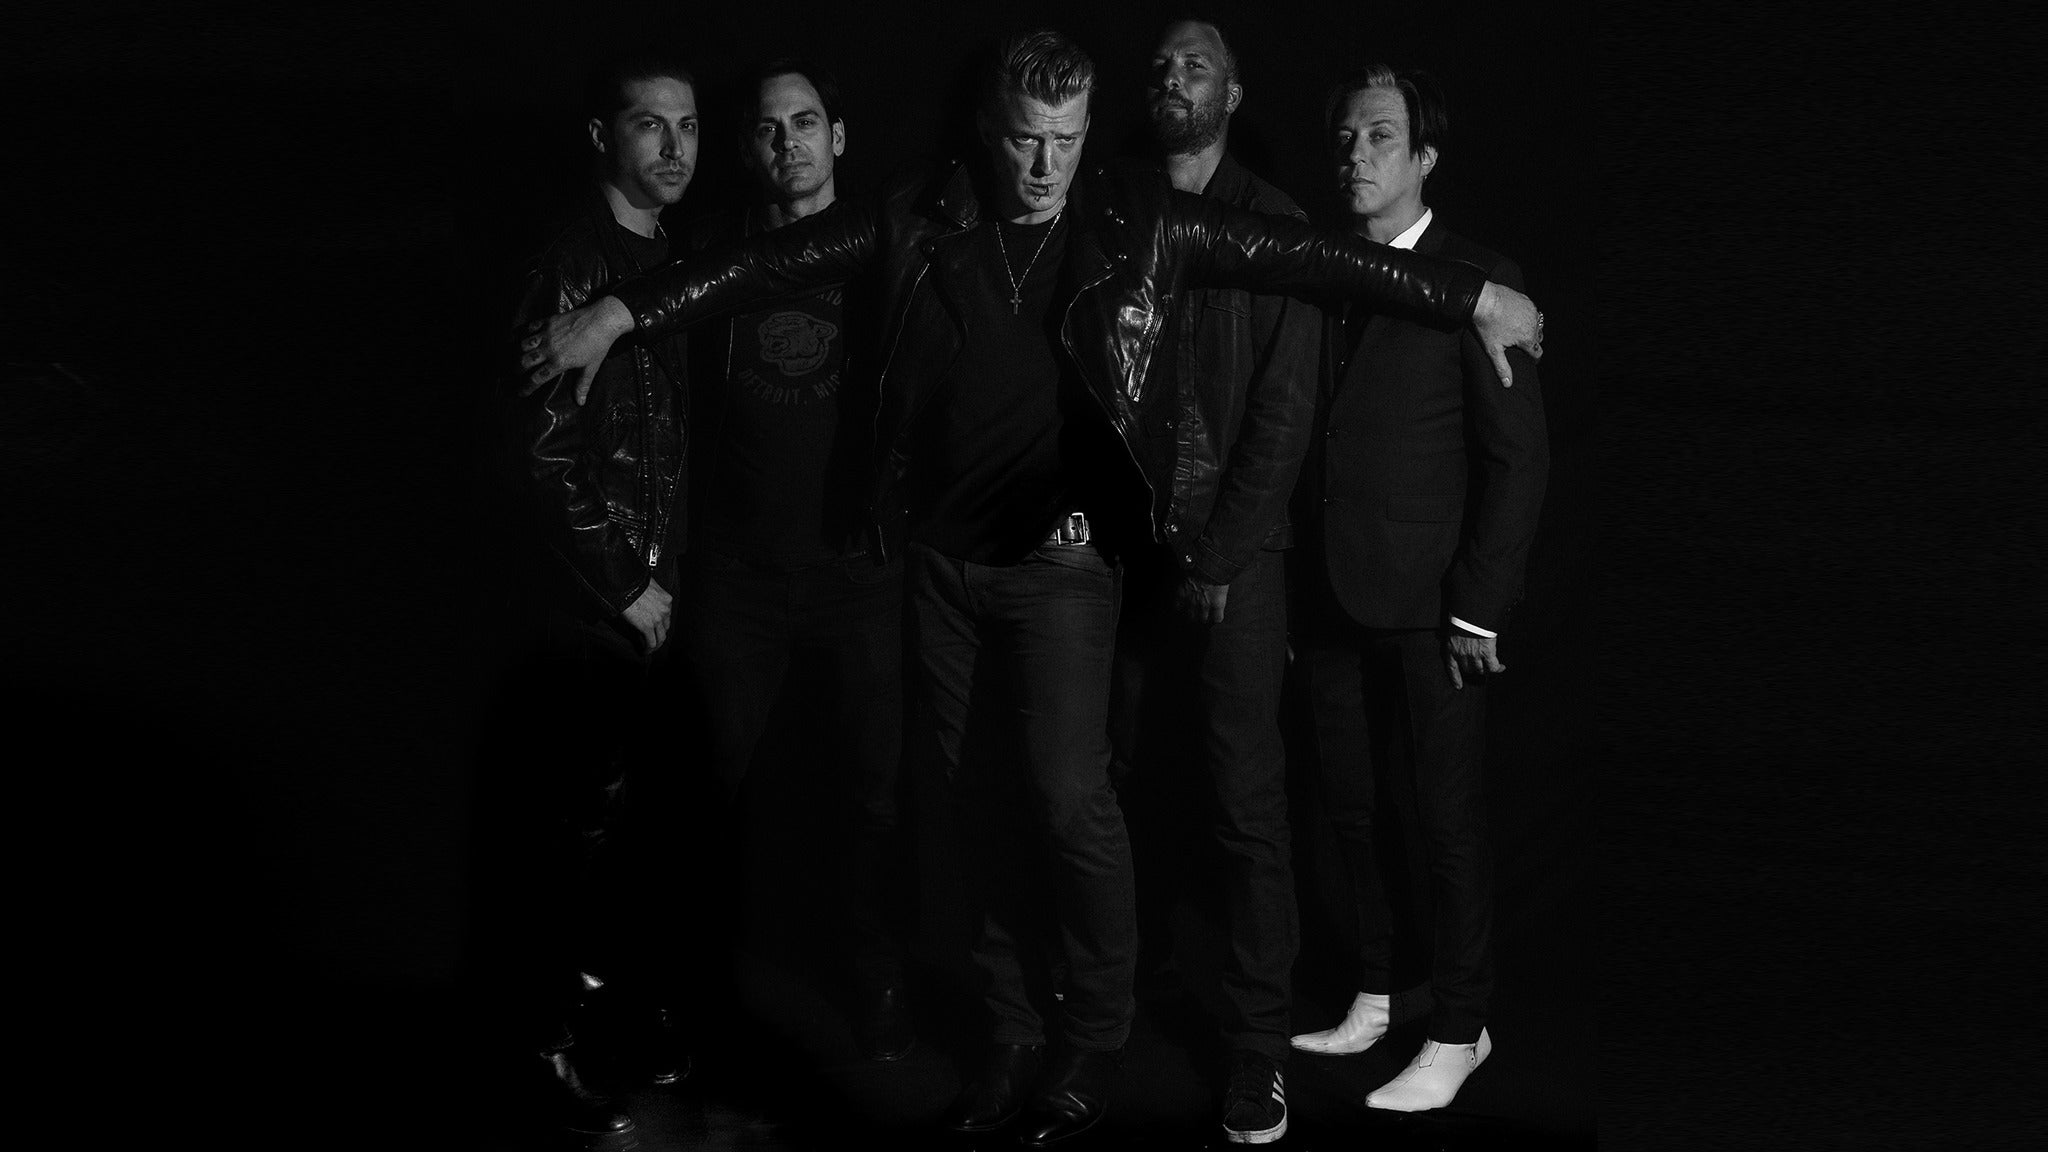 Queens of the Stone Age: Villains Tour 2018 at KeyArena - Seattle, WA 98109